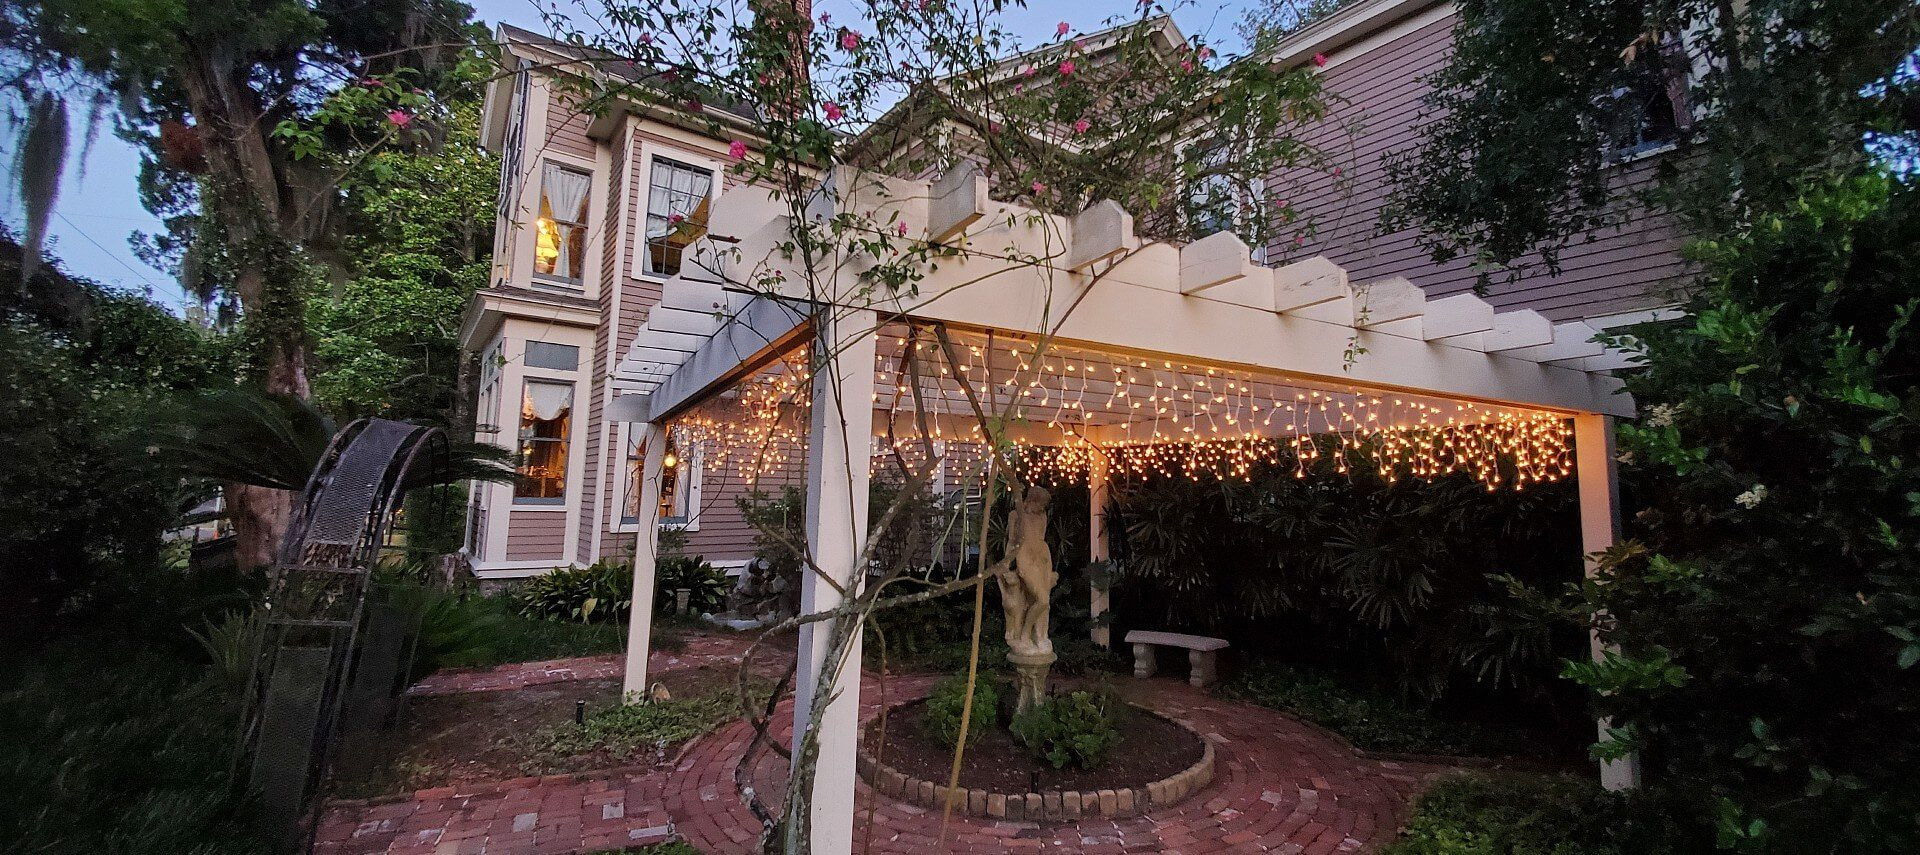 Back patio of a large home featuring a white pergola covered with dangling white lights over a statue